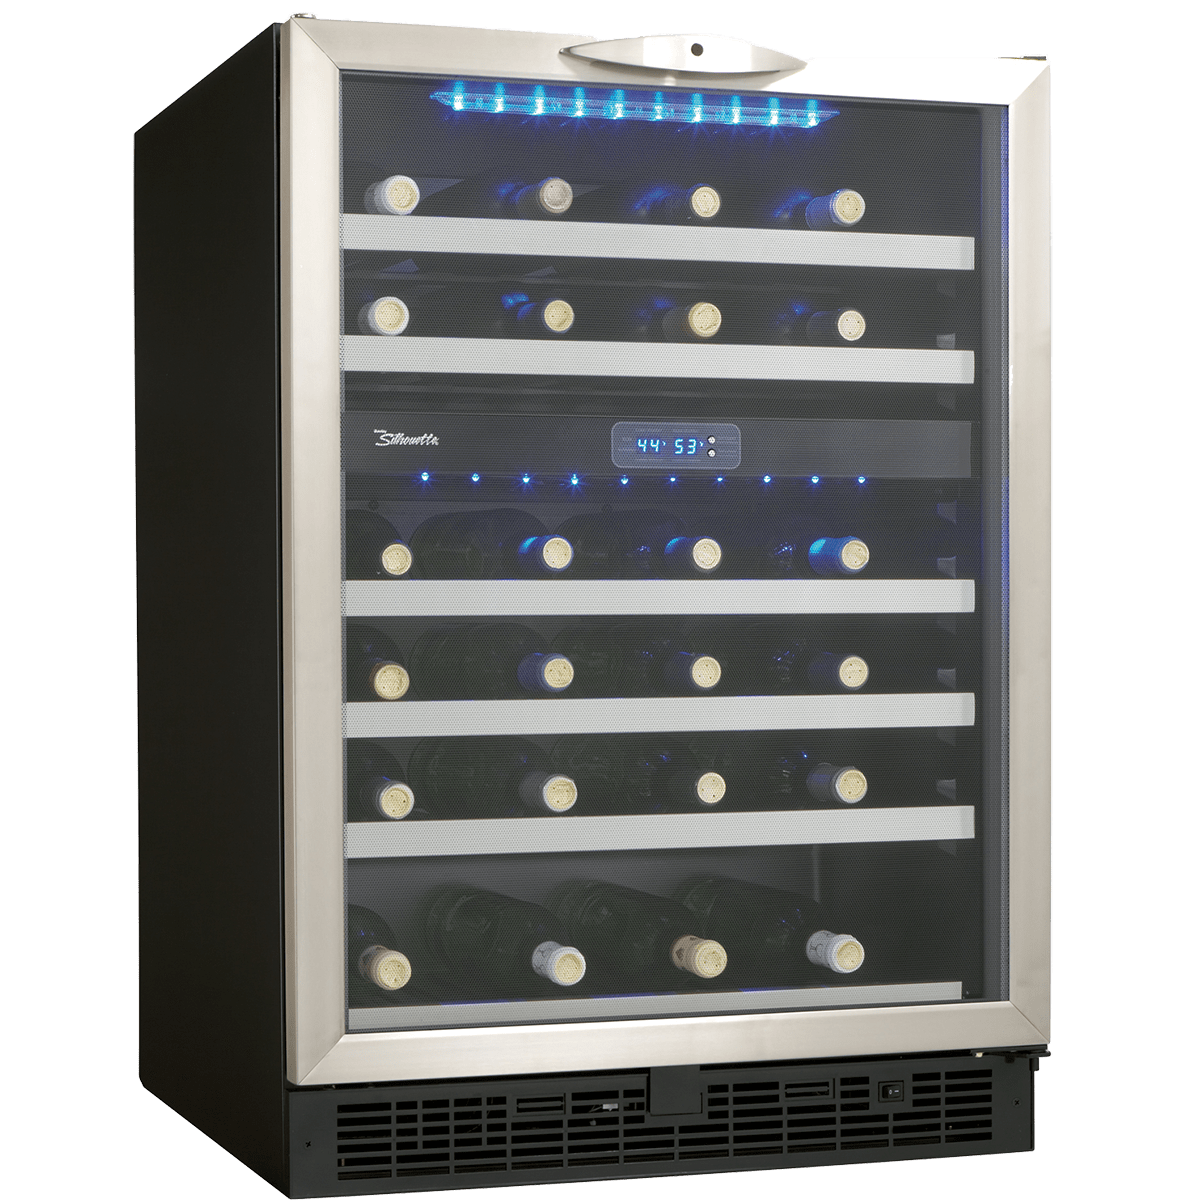 Silhouette Dwc518bls Stilton 51 Bottle Wine Cooler